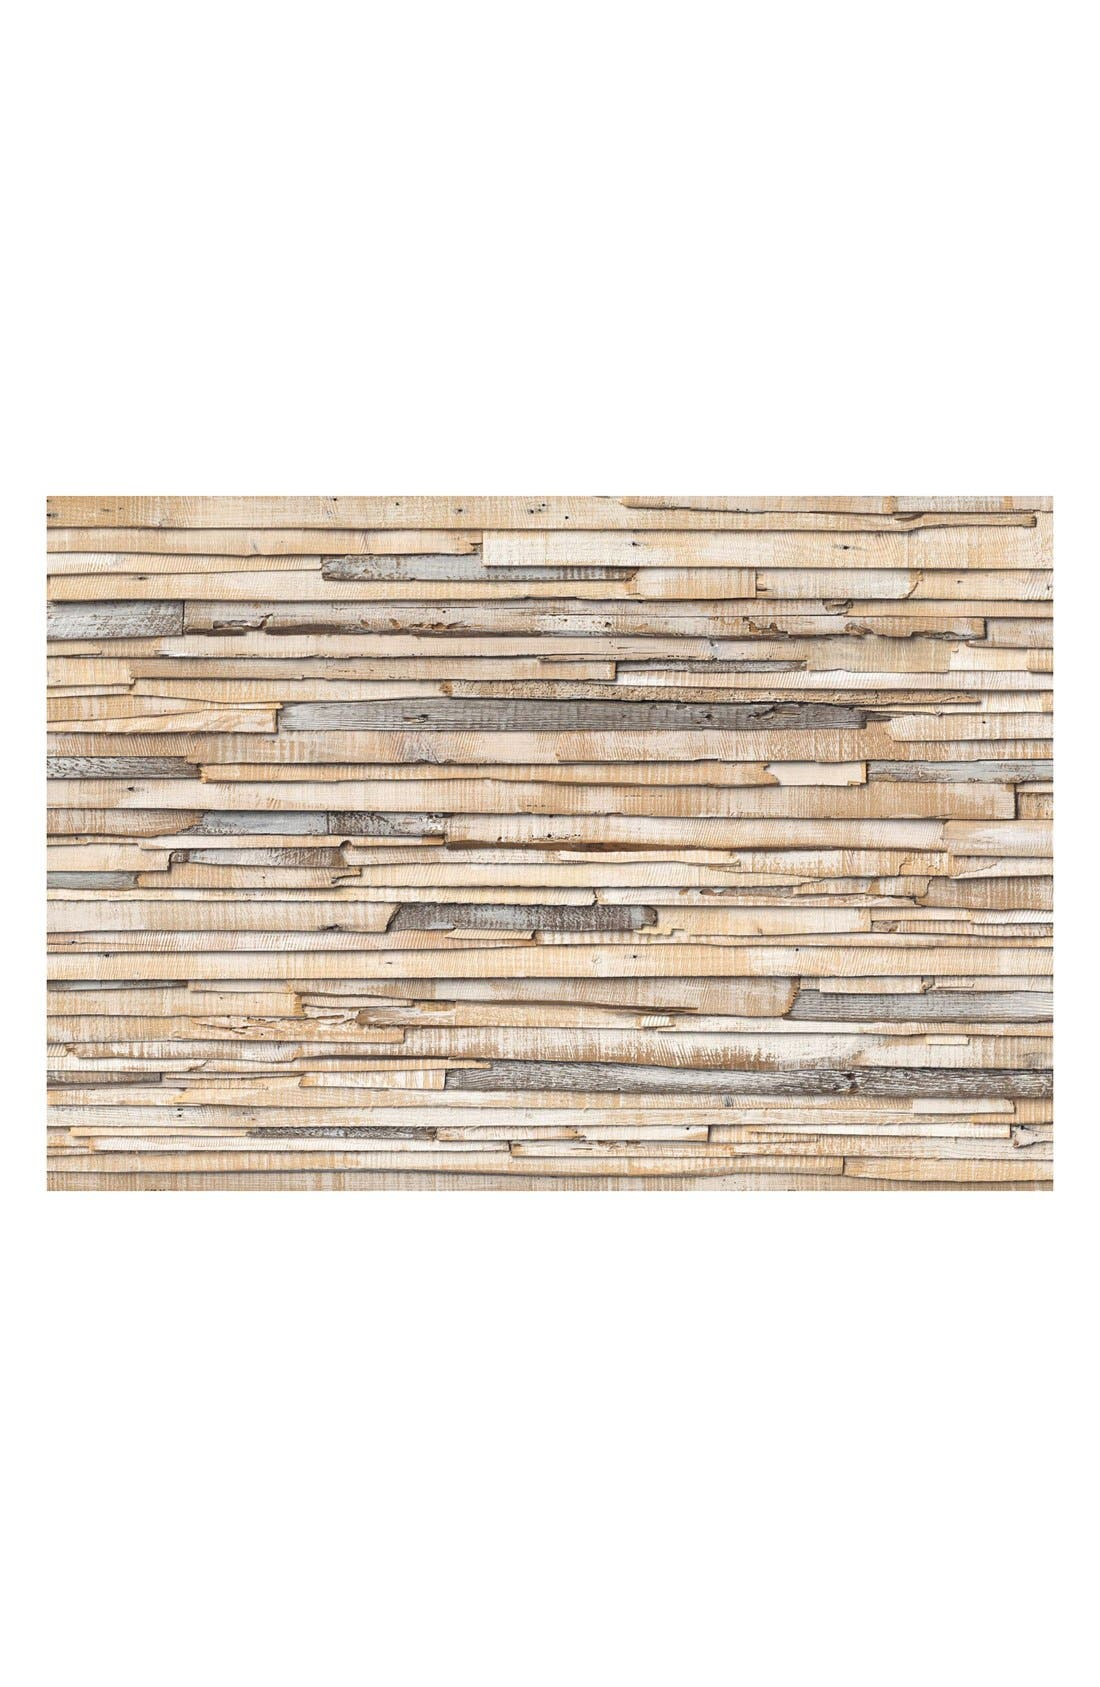 Alternate Image 1 Selected - Wallpops Whitewashed Wood Wall Mural